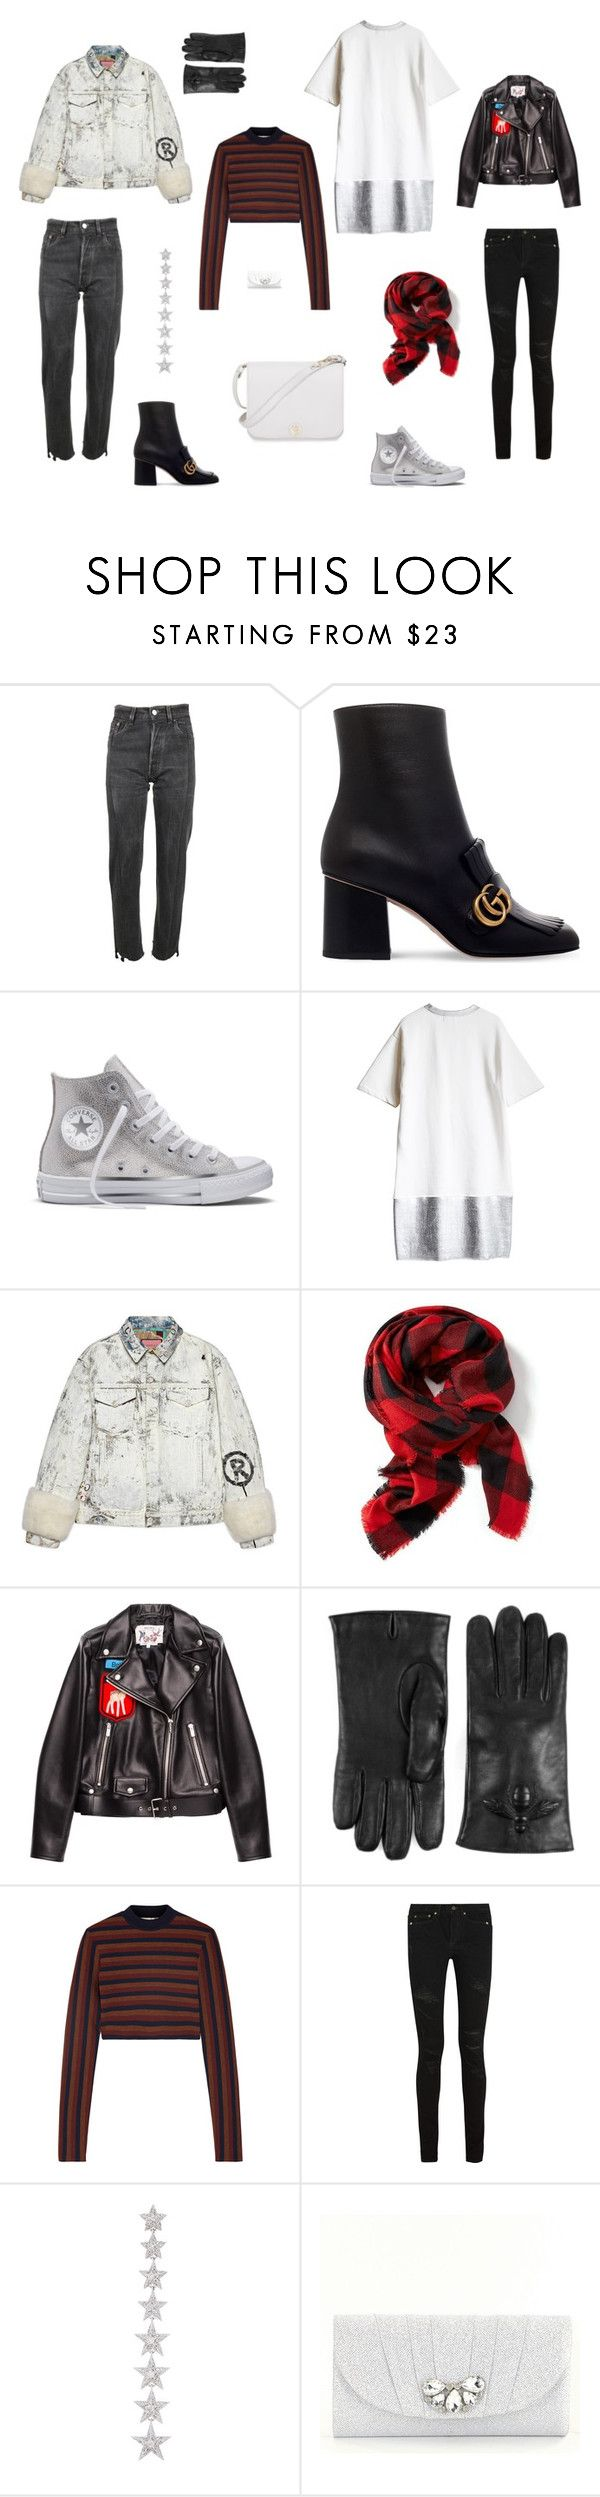 """NK1"" by neiman-bags on Polyvore featuring мода, Vetements, Gucci, Converse, Old Navy, Miu Miu, Victoria Beckham, Yves Saint Laurent, Elise Dray и Kate Landry"